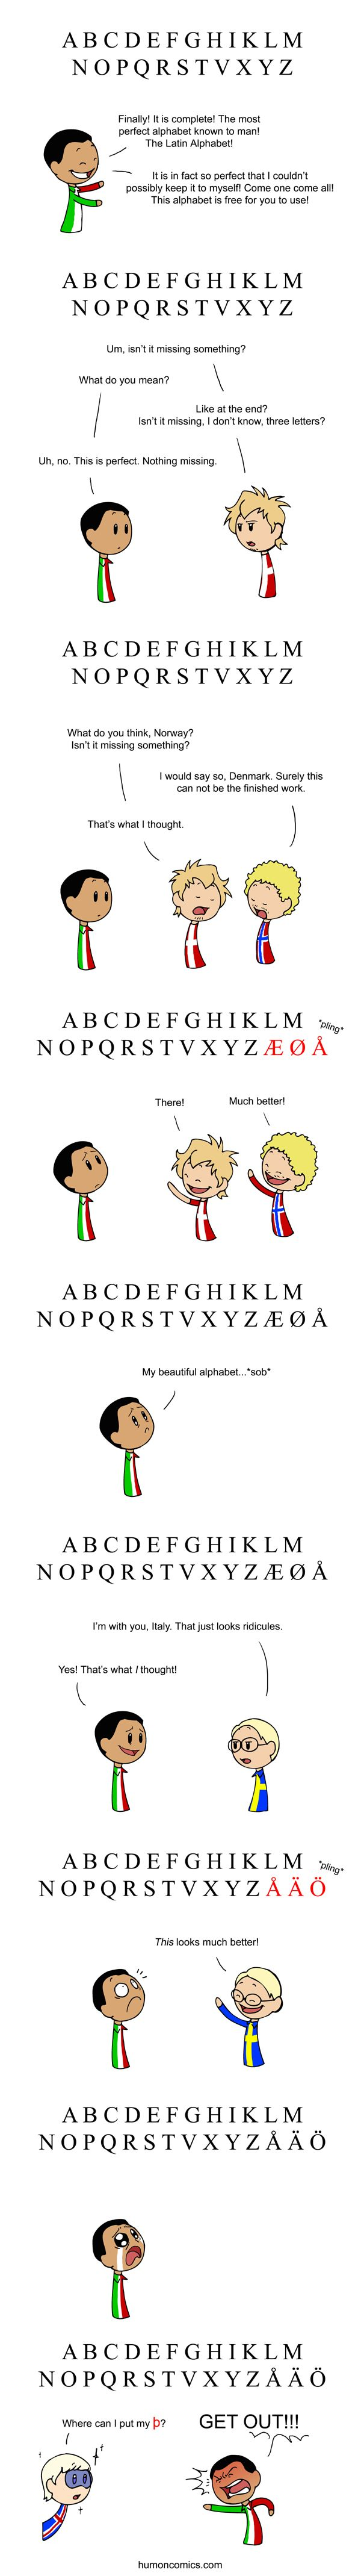 In the Scandinavian countries we use the Latin alphabet, but with add-ons.